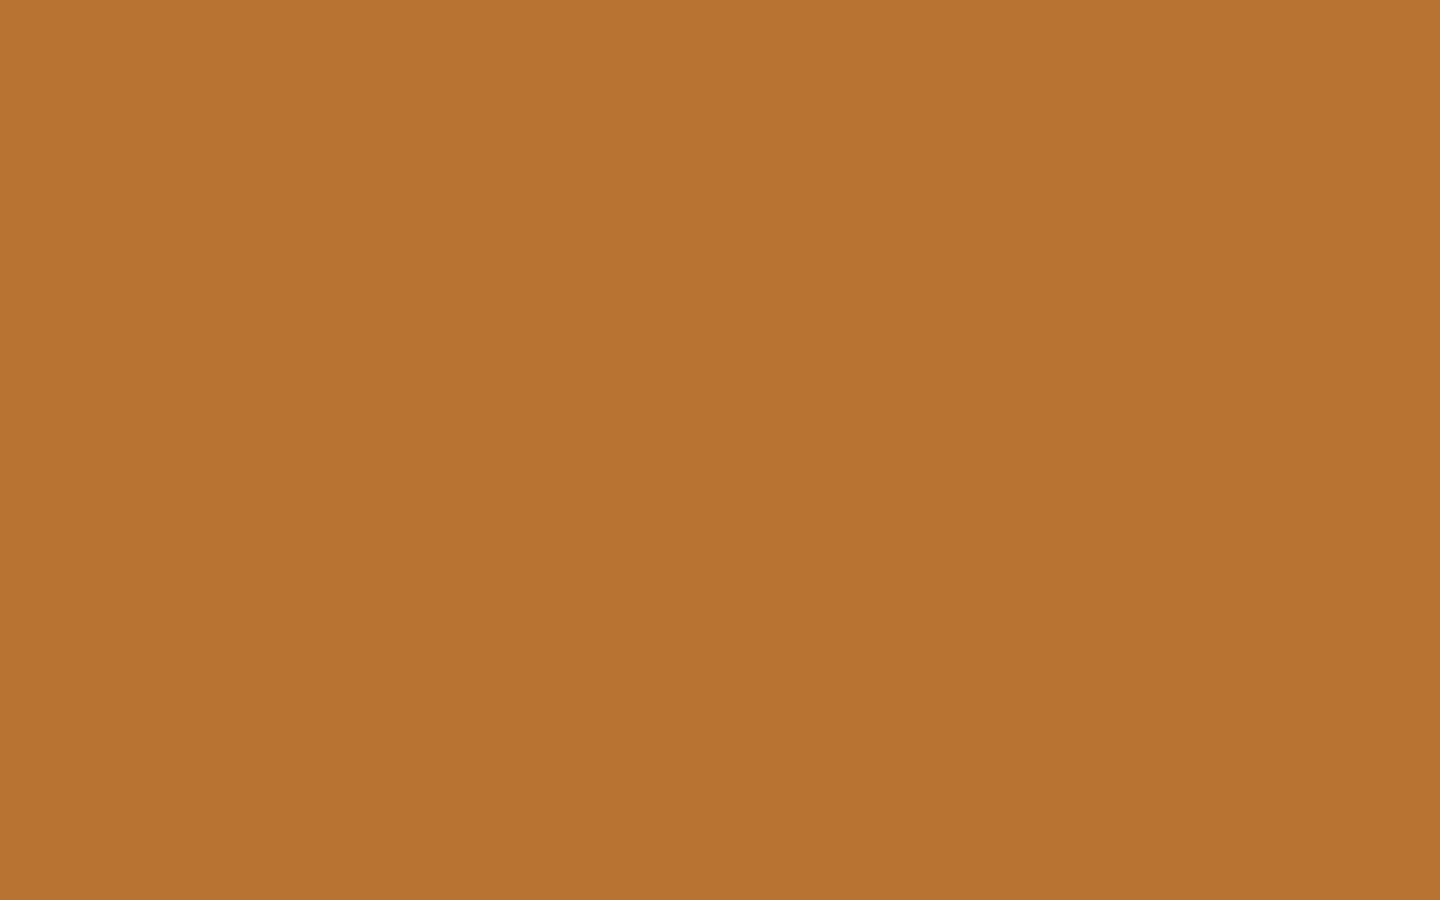 1440x900 Copper Solid Color Background